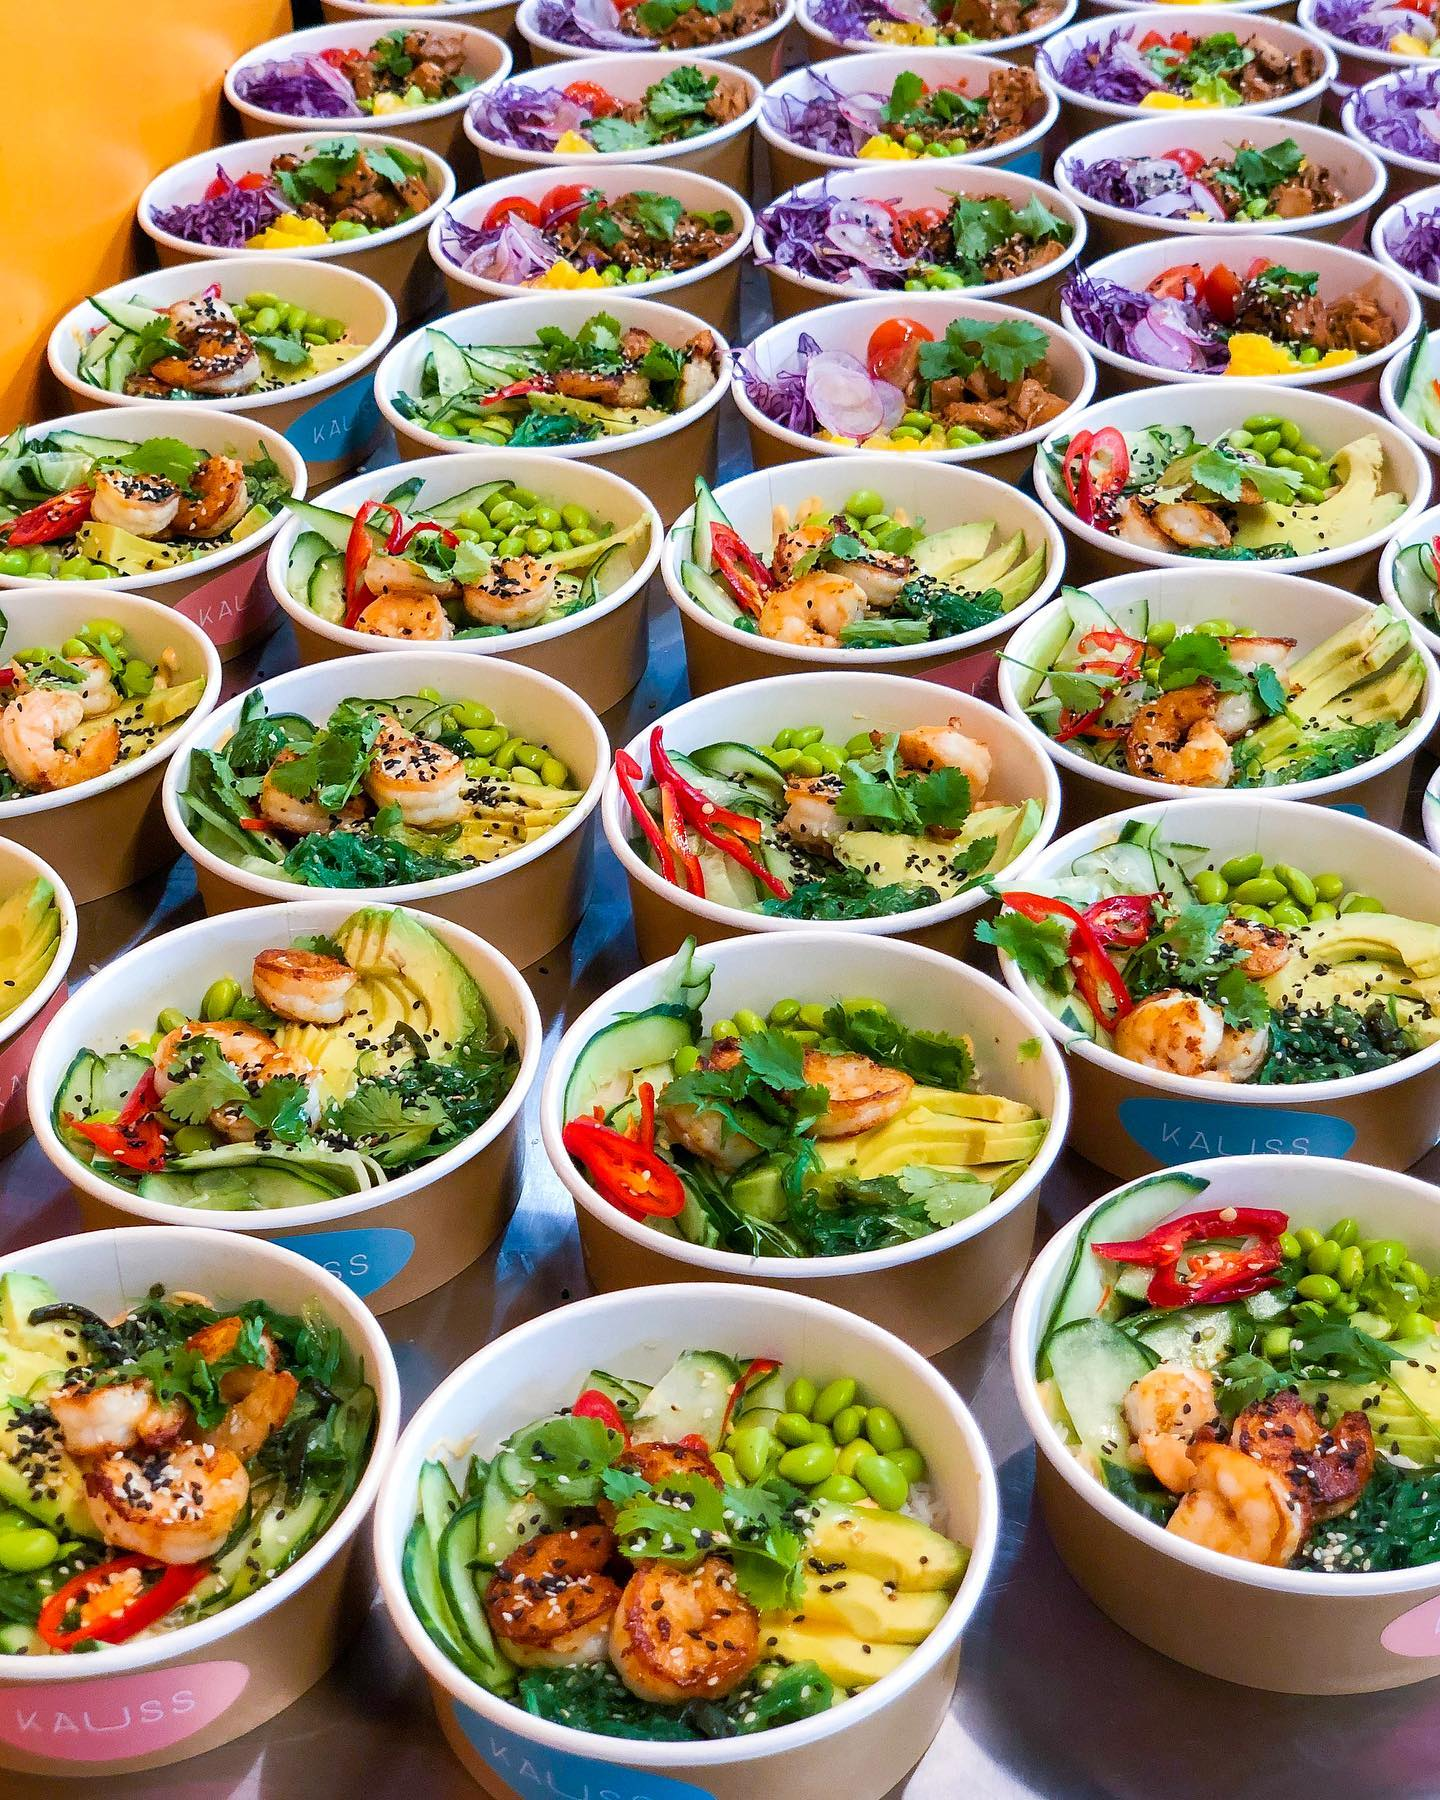 Table full of multiple rows of poke bowls with lush toppings and colorful veggies